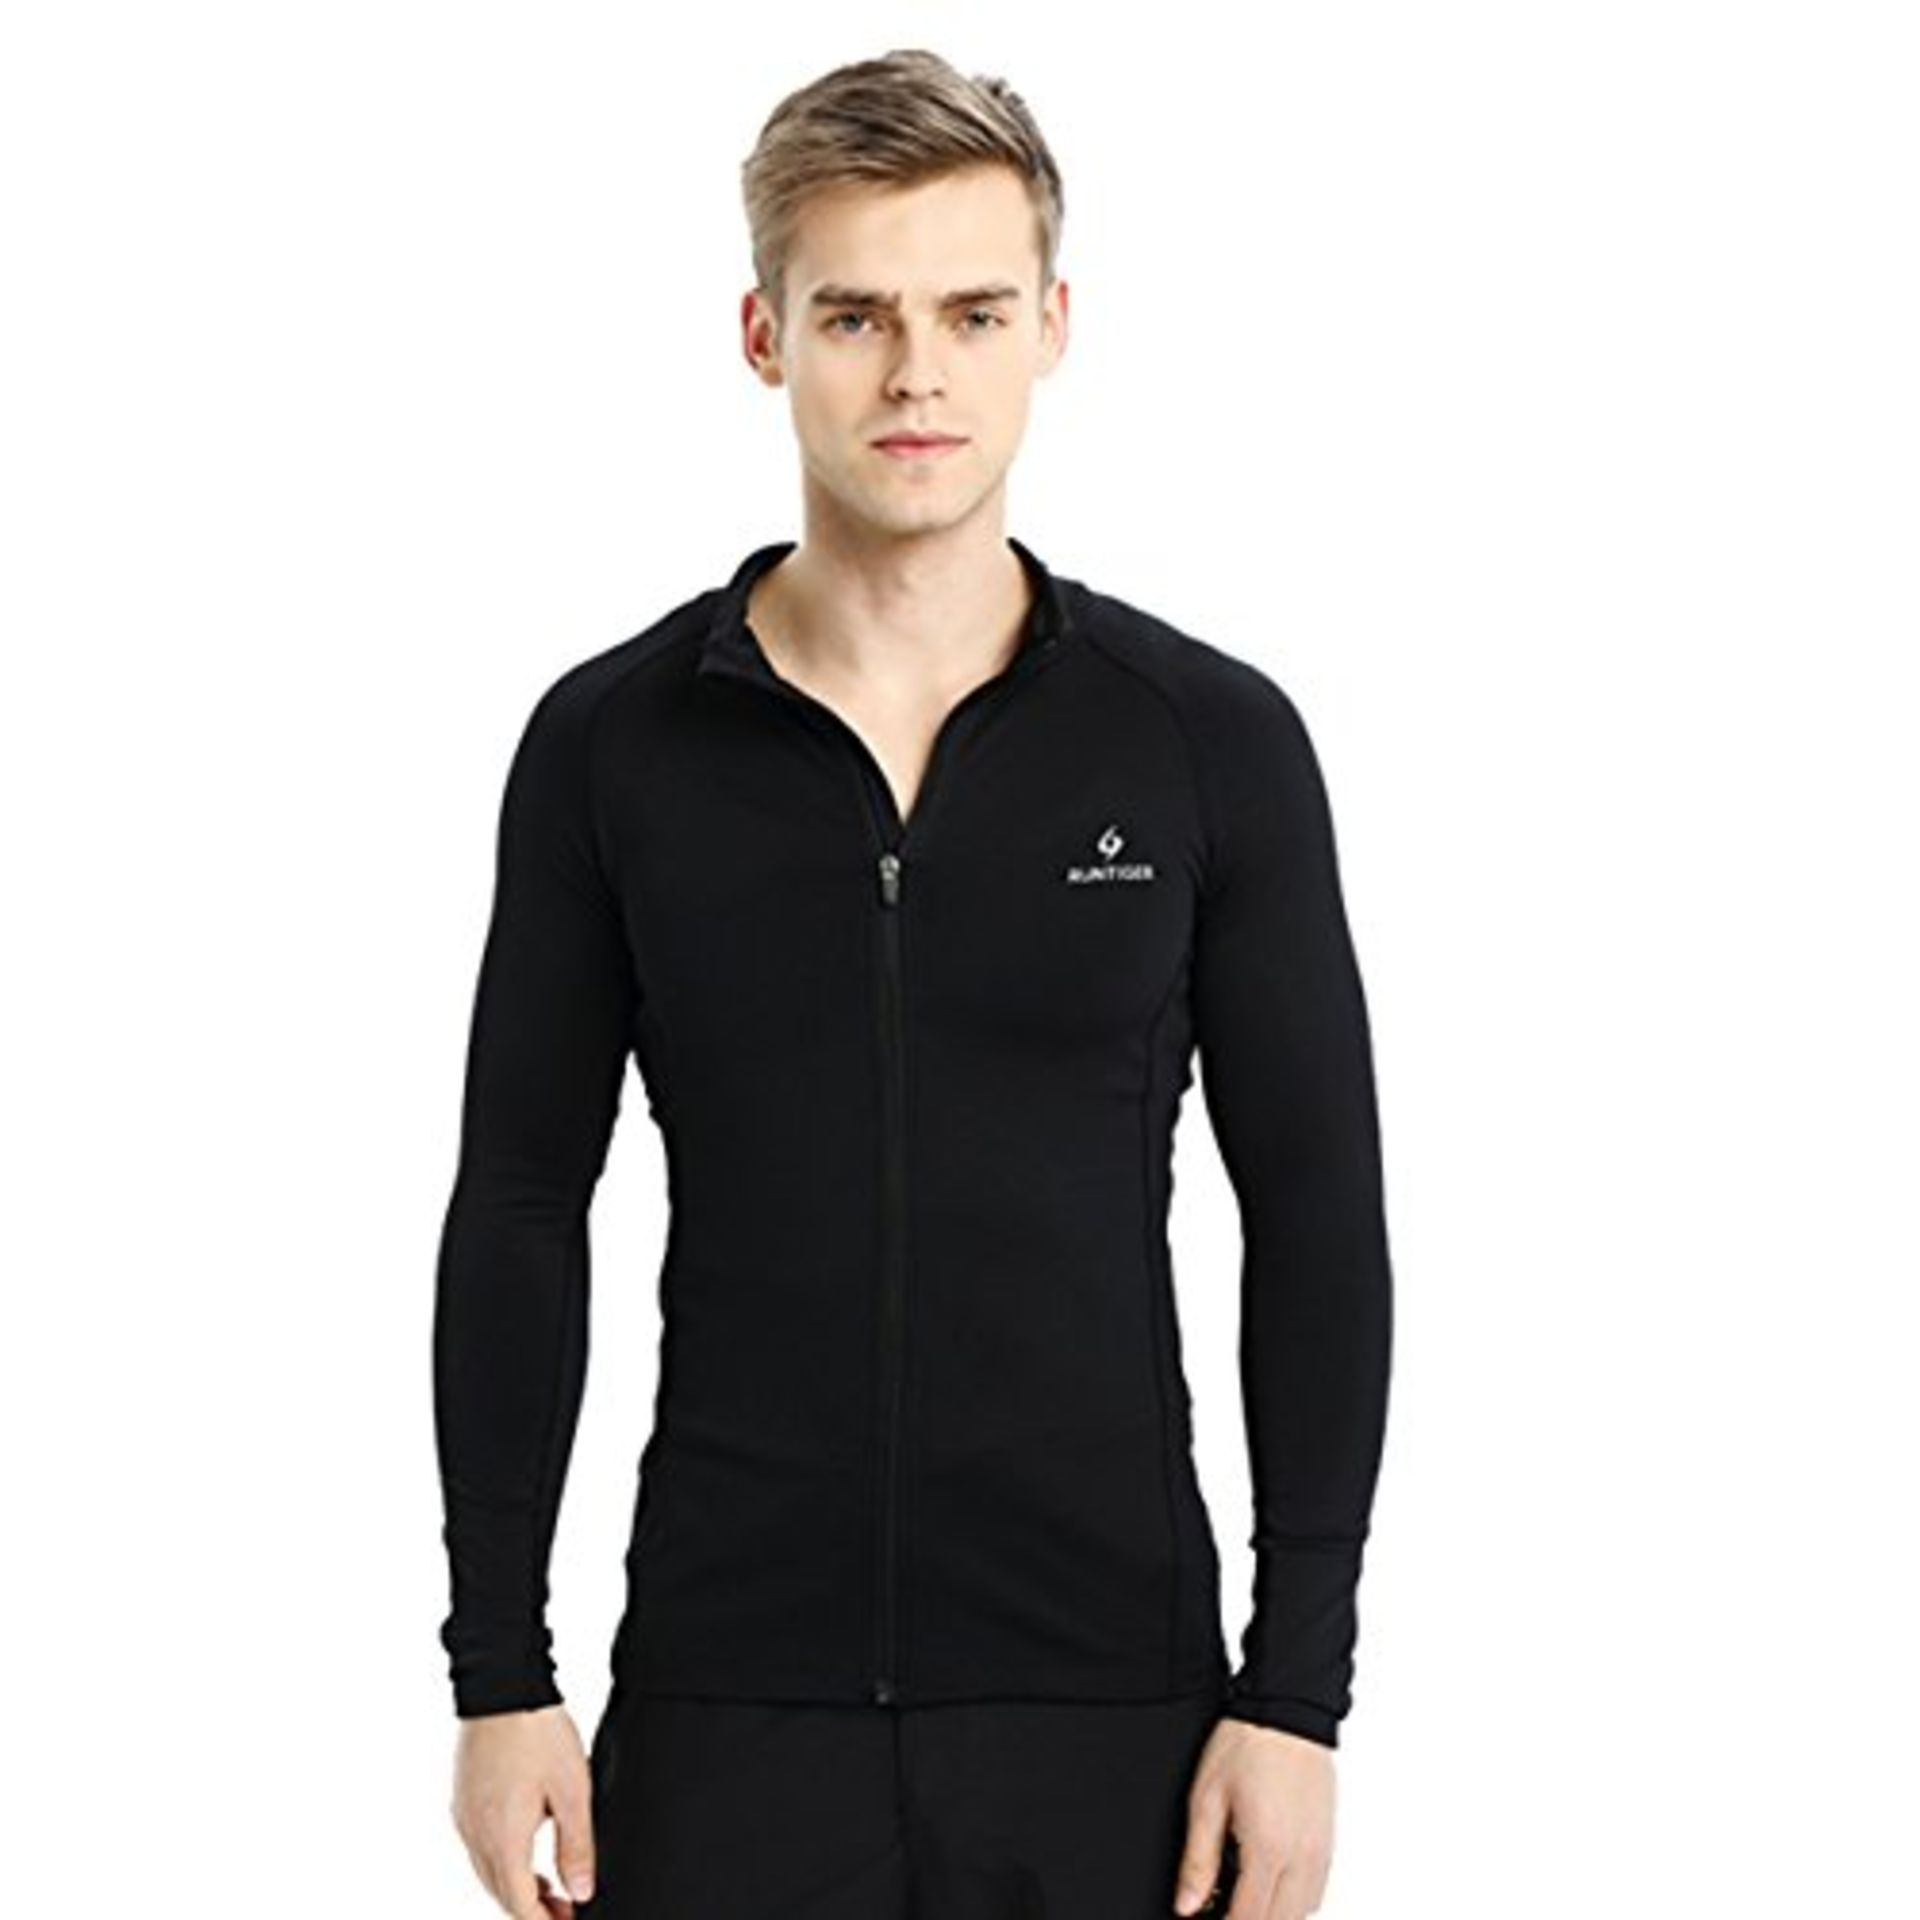 Lot 10251 - V Brand New Black Runtiger Long Sleeve Running Top Size M - Item is simelar to picture